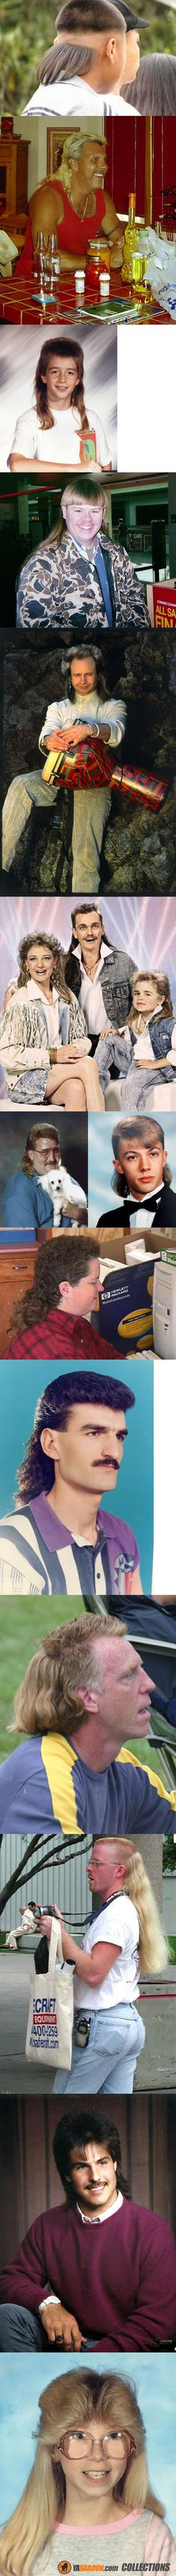 Horror Mullet Picture Show...most of which can be seen at any time at your nearest WalMart!